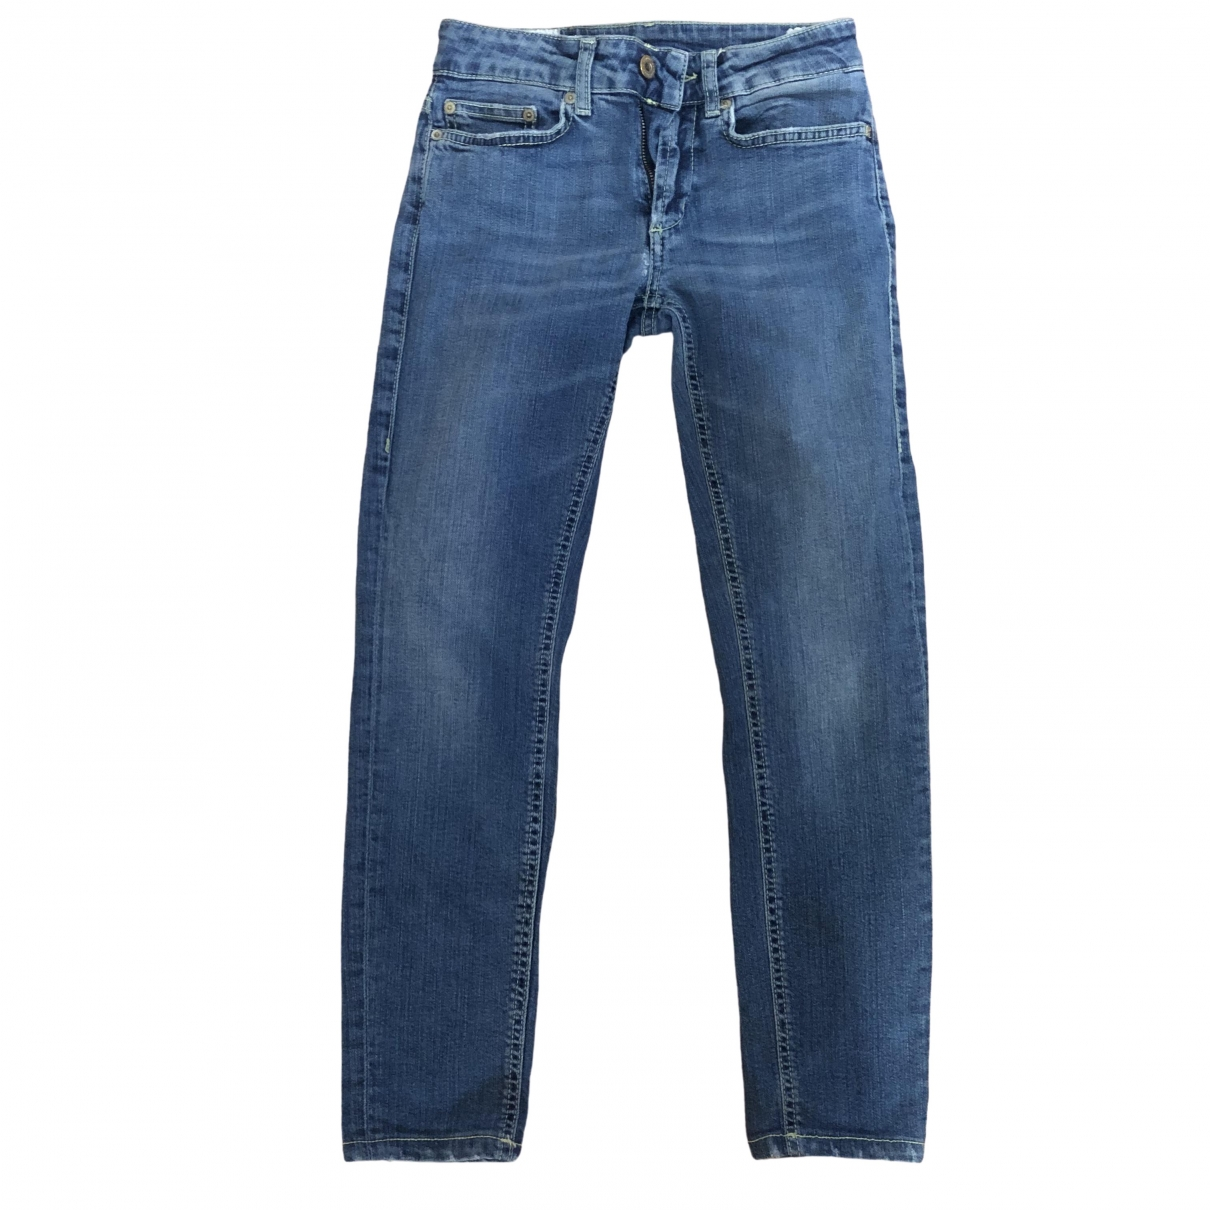 Dondup \N Blue Cotton - elasthane Jeans for Women 25 US